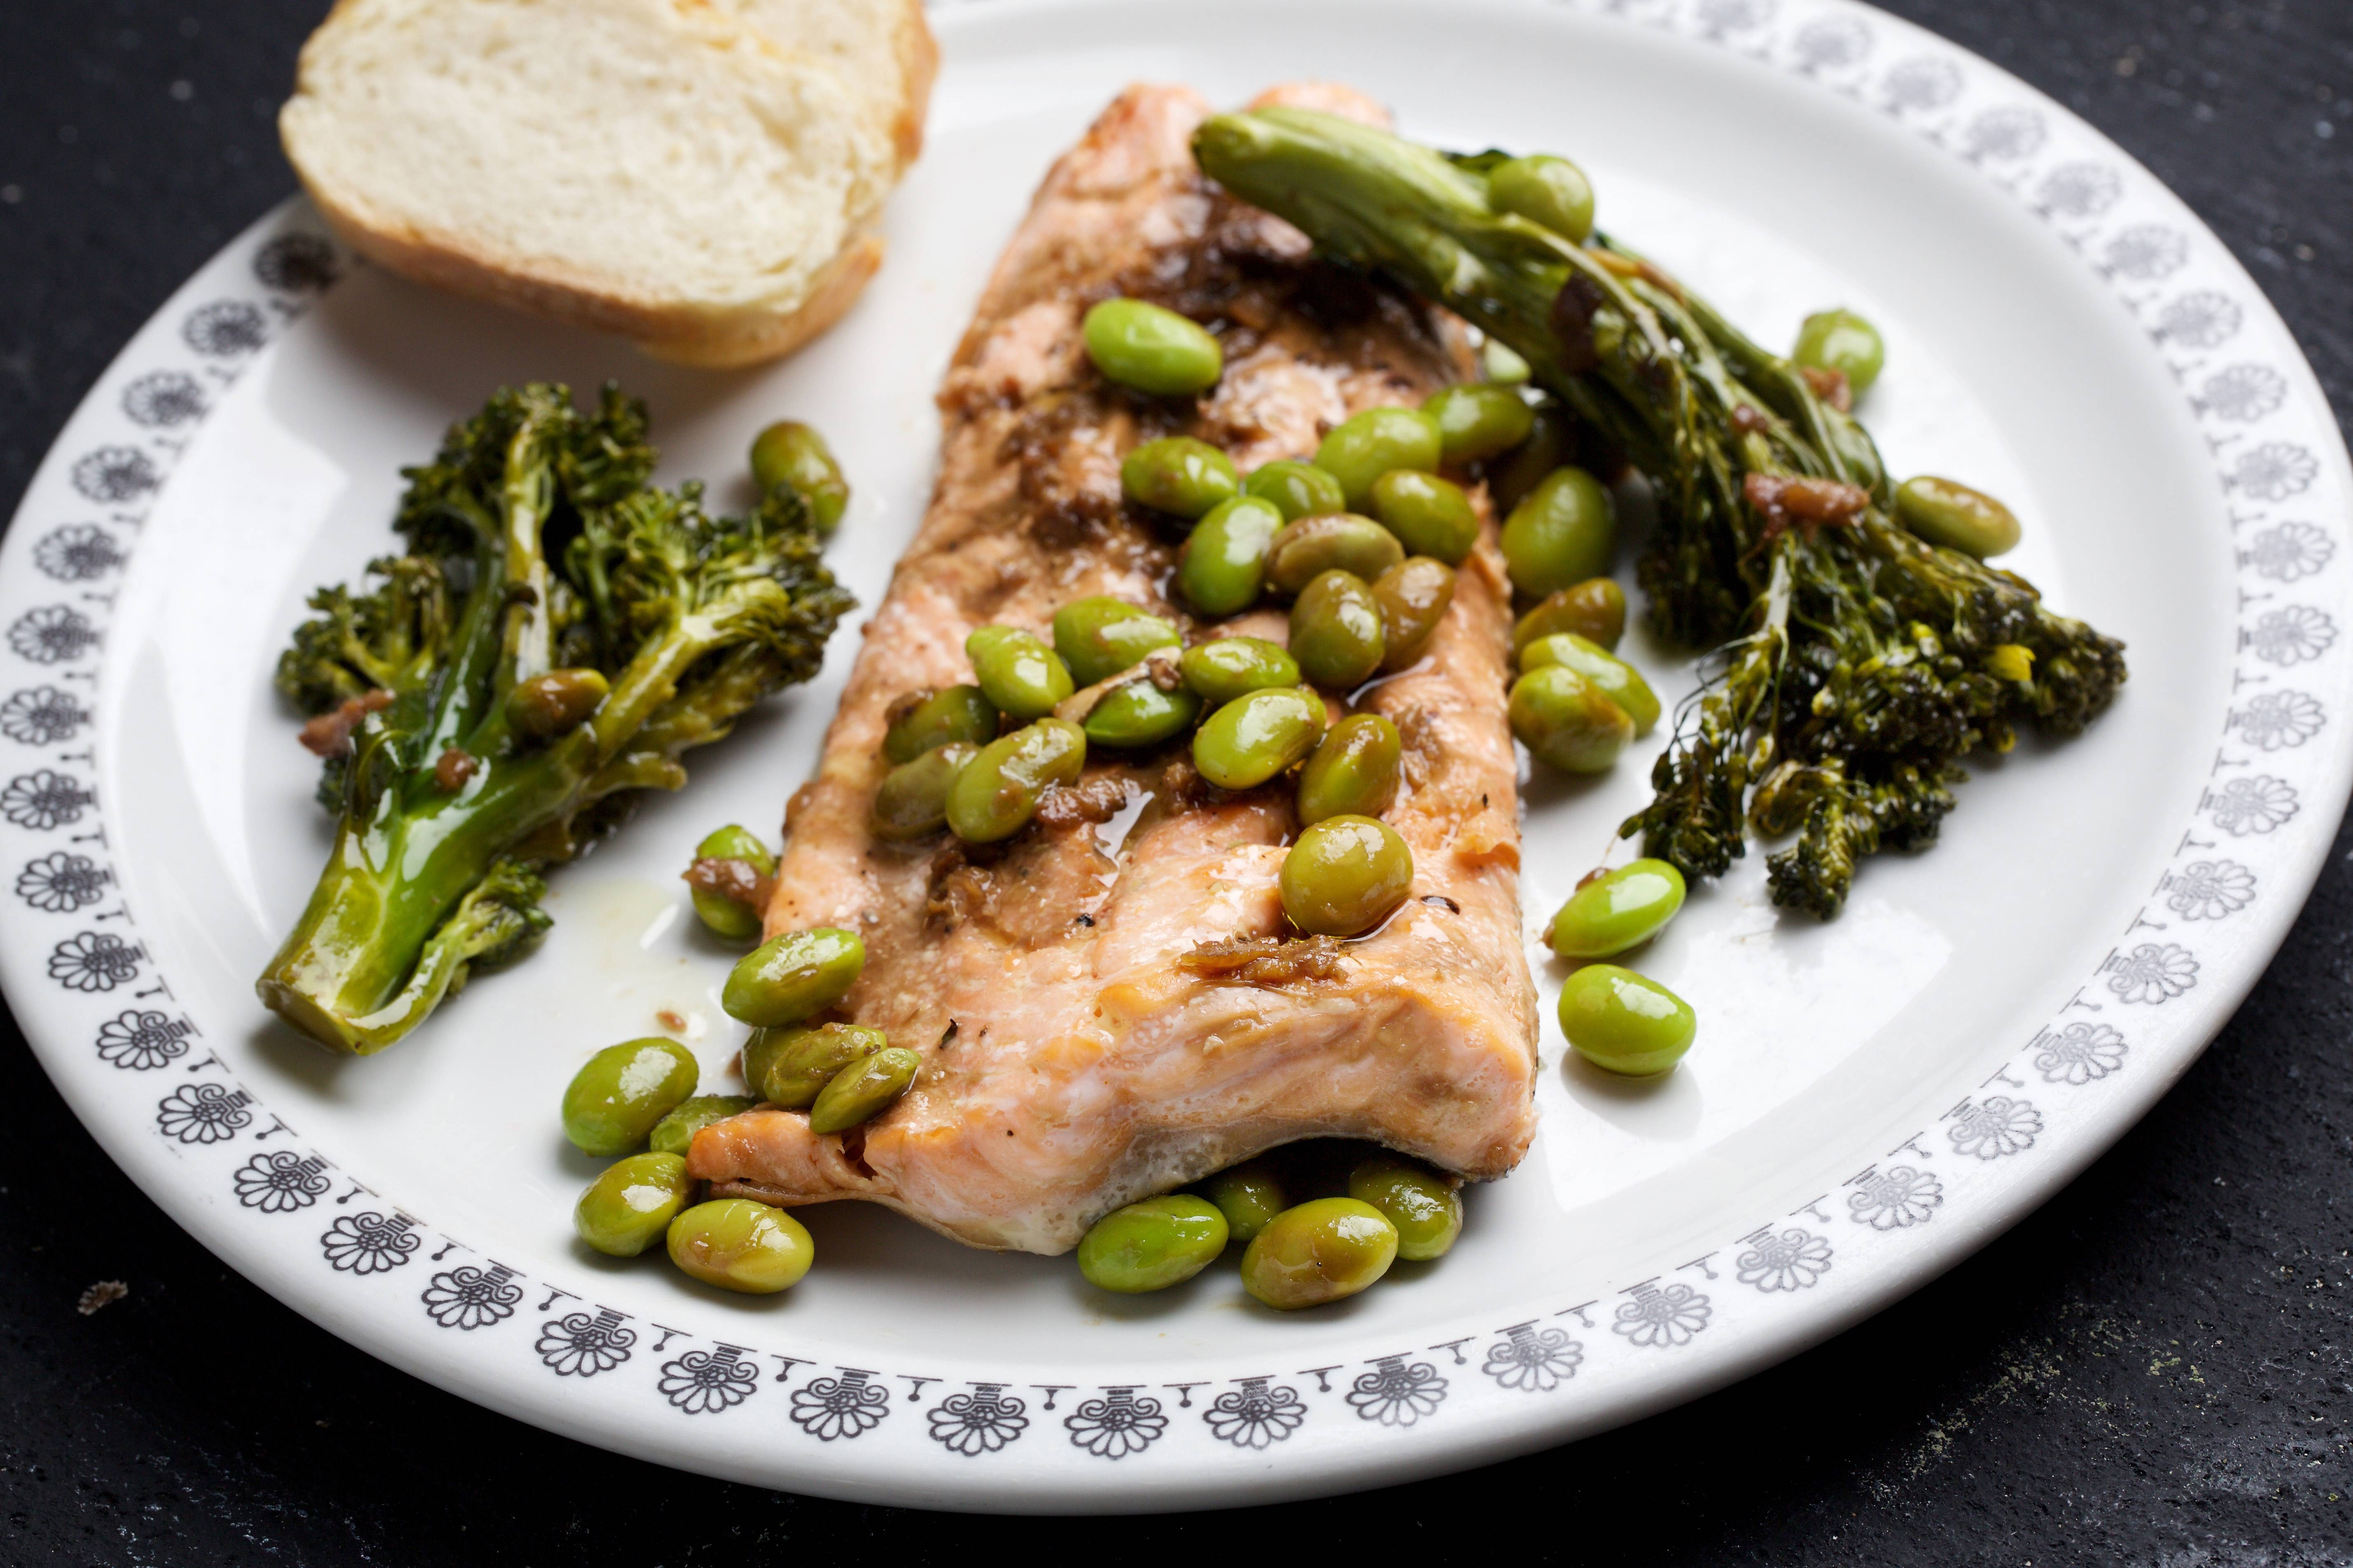 Arctic Char, Broccolini and Edamame With Soy-Ginger Sauce is a sheet pan dinner that's healthful, packed with flavor and ready in 20 minutes.